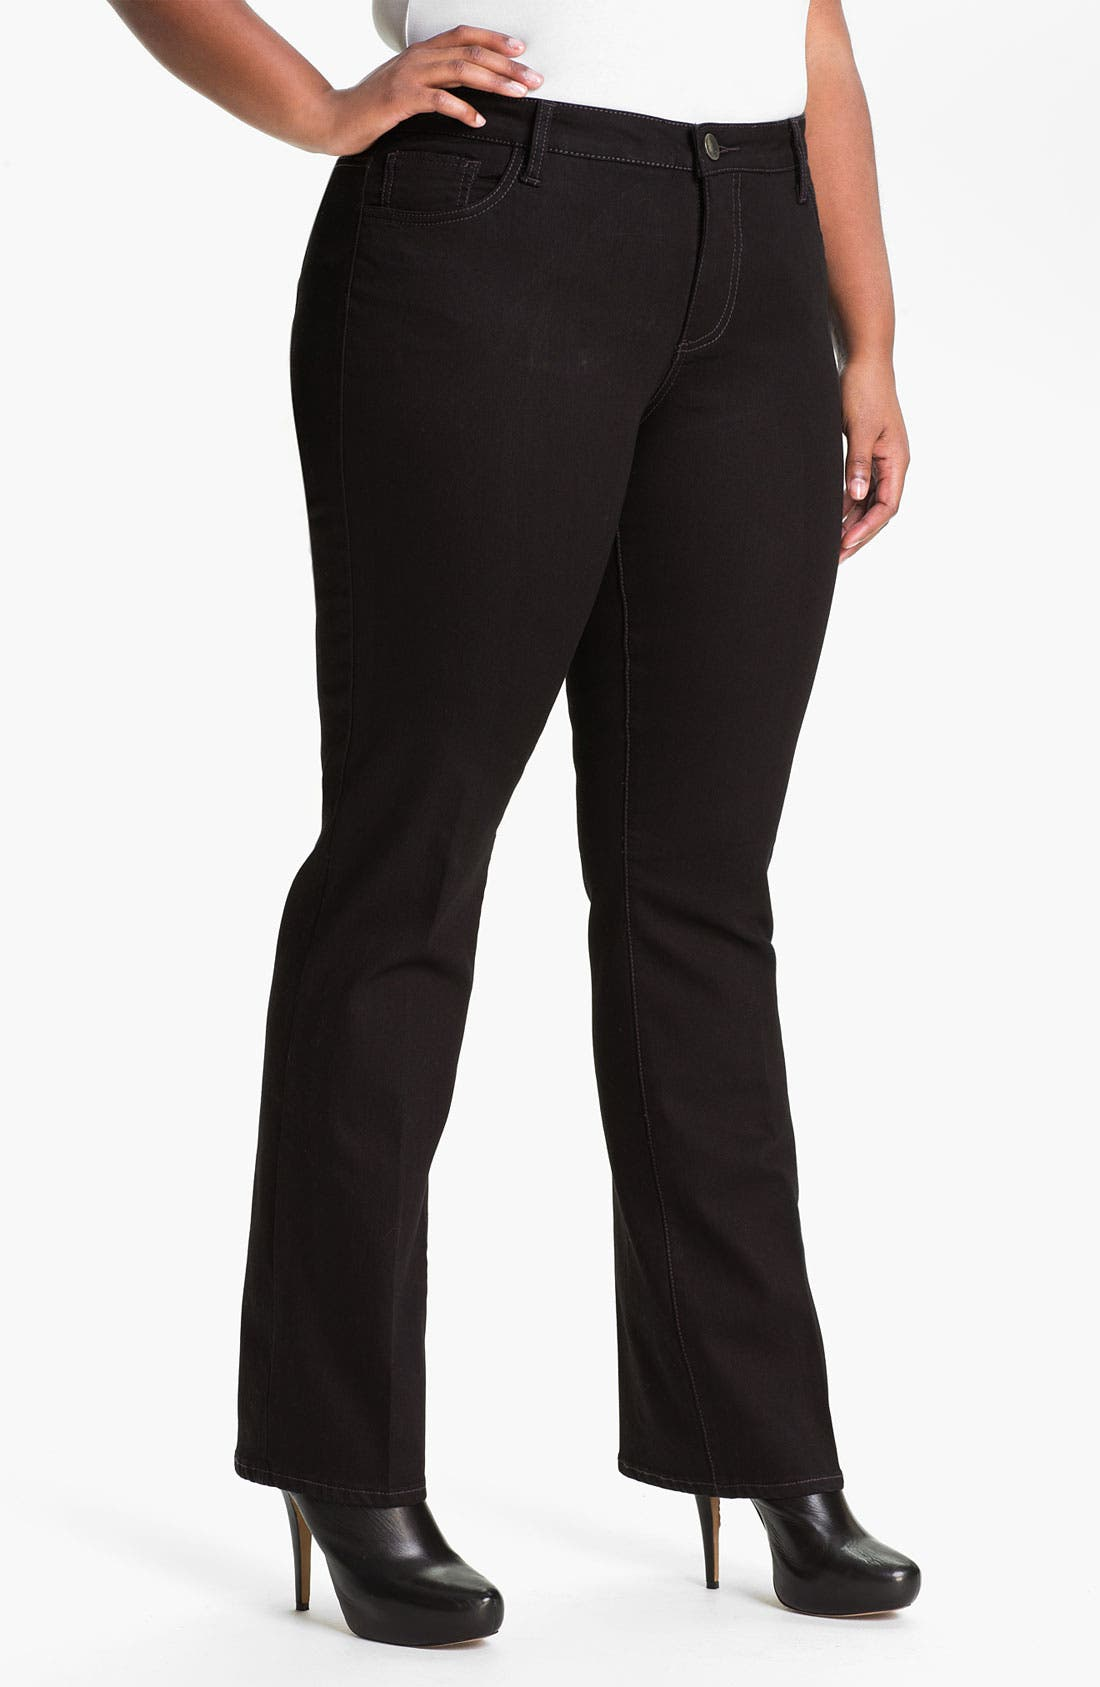 Alternate Image 1 Selected - KUT from the Kloth Bootcut Jeans (Plus Size)